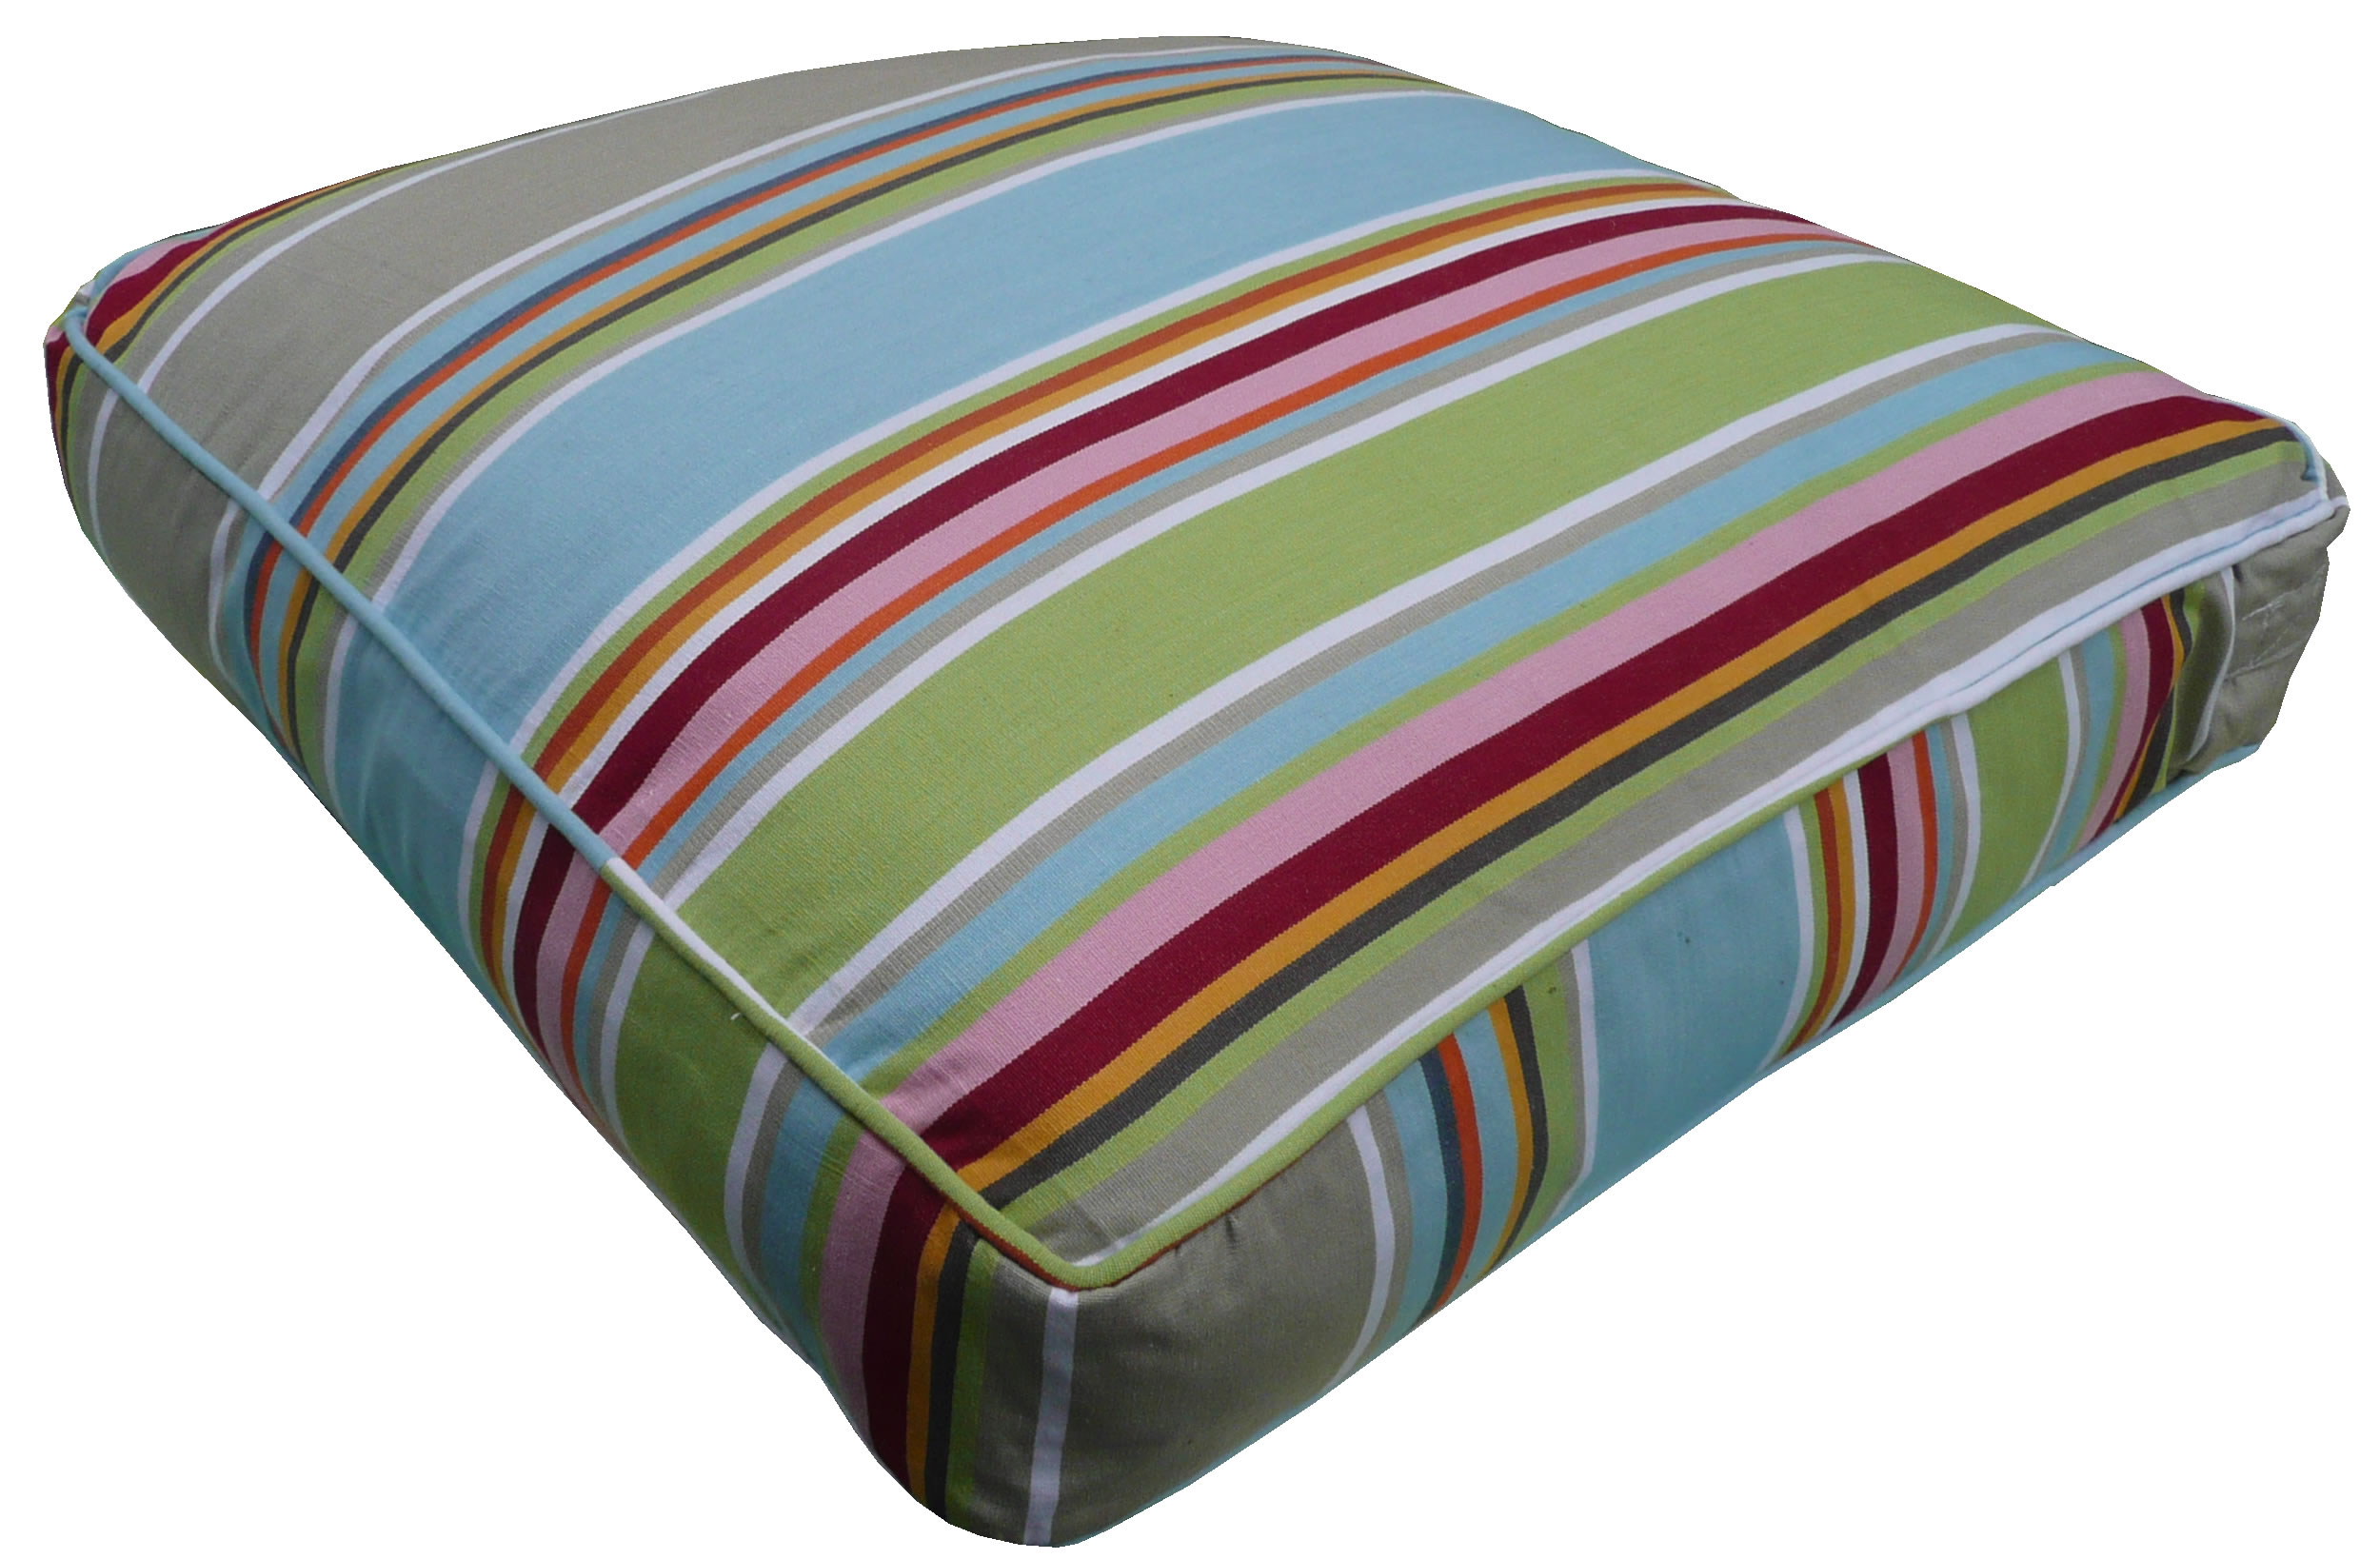 Duck Egg Blue Large Floor Cushions - Cricket Stripe